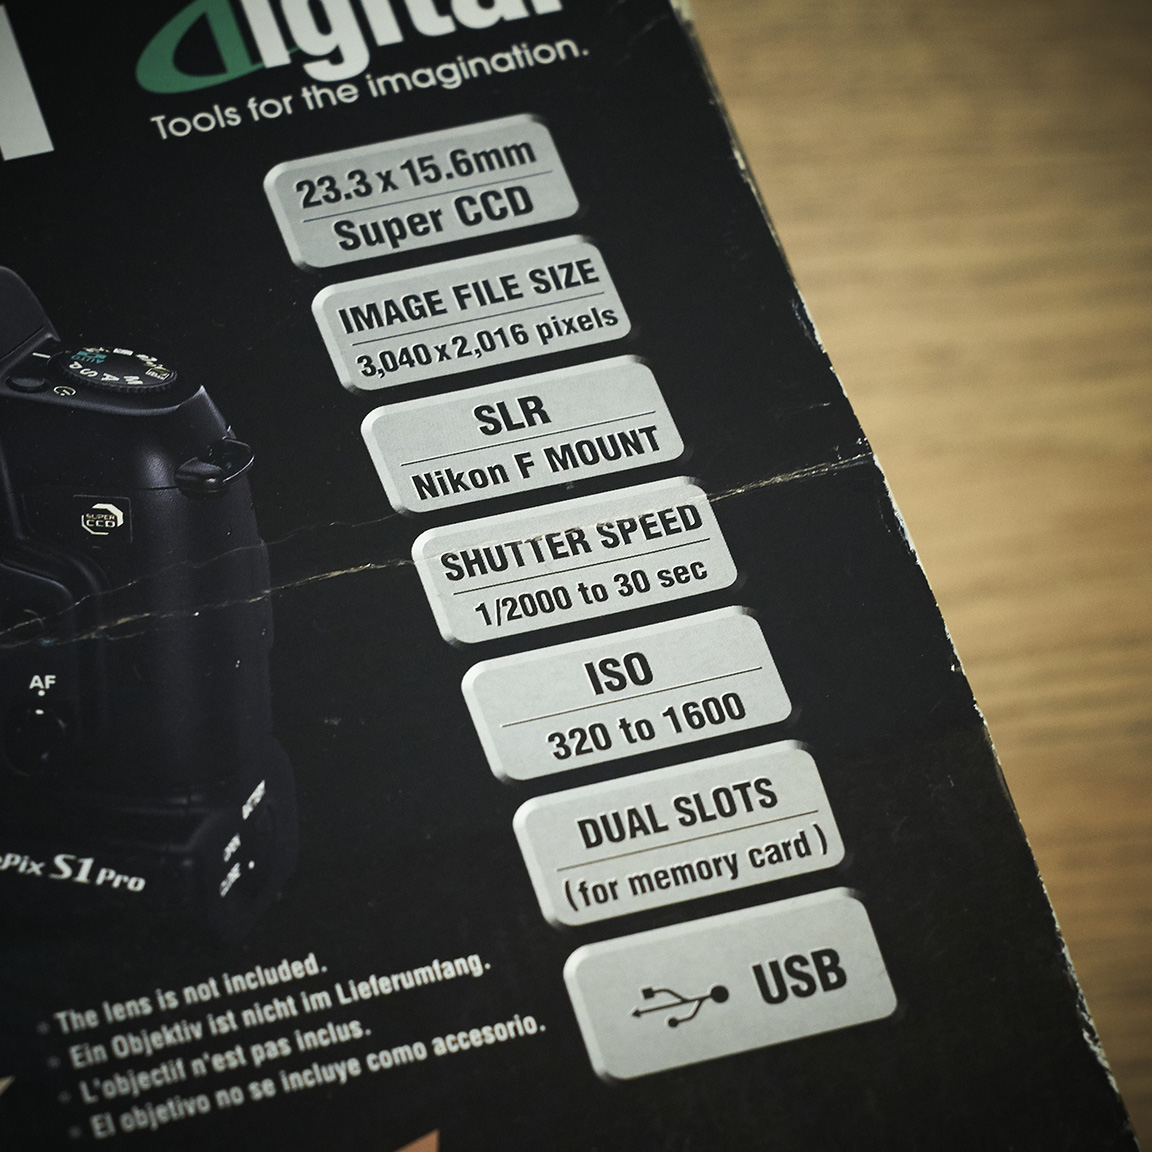 Fujifilm Finepix S1 Pro Camera Specifications